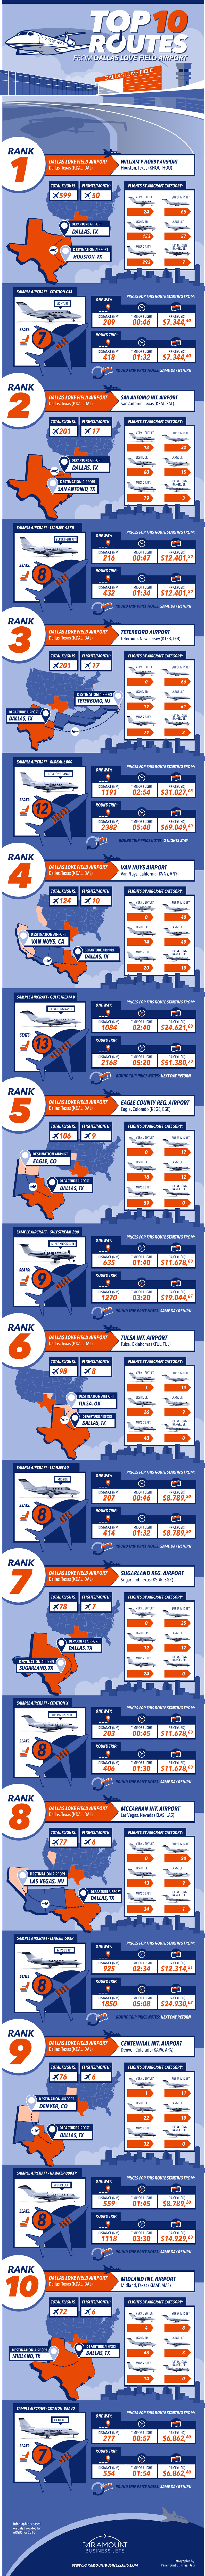 Top 10 Routes from Dallas Love Field Airport (KDAL)